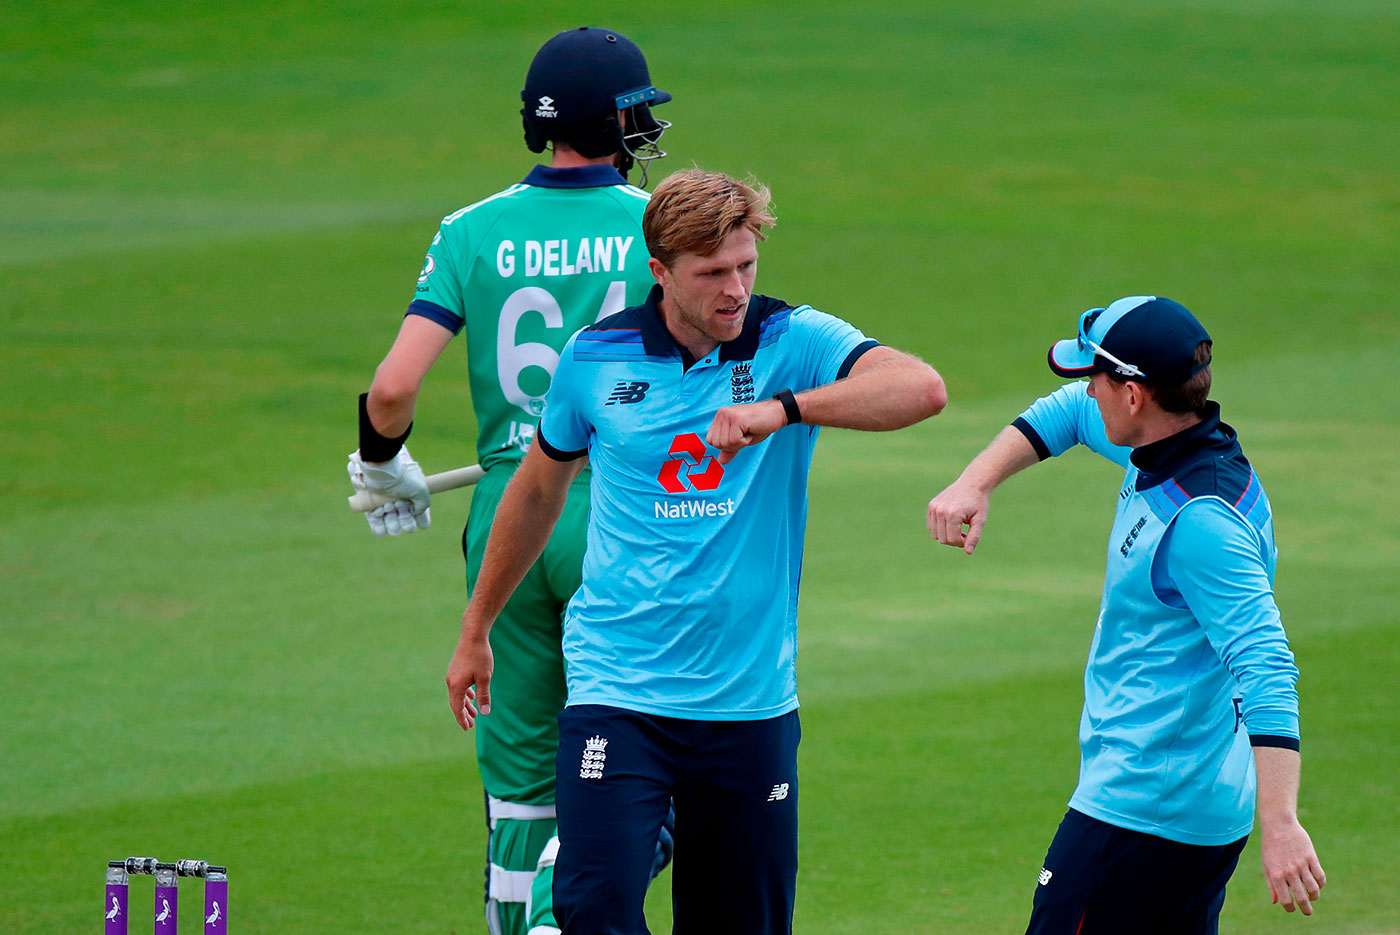 England vs Ireland 3rd ODI Fantasy Tips